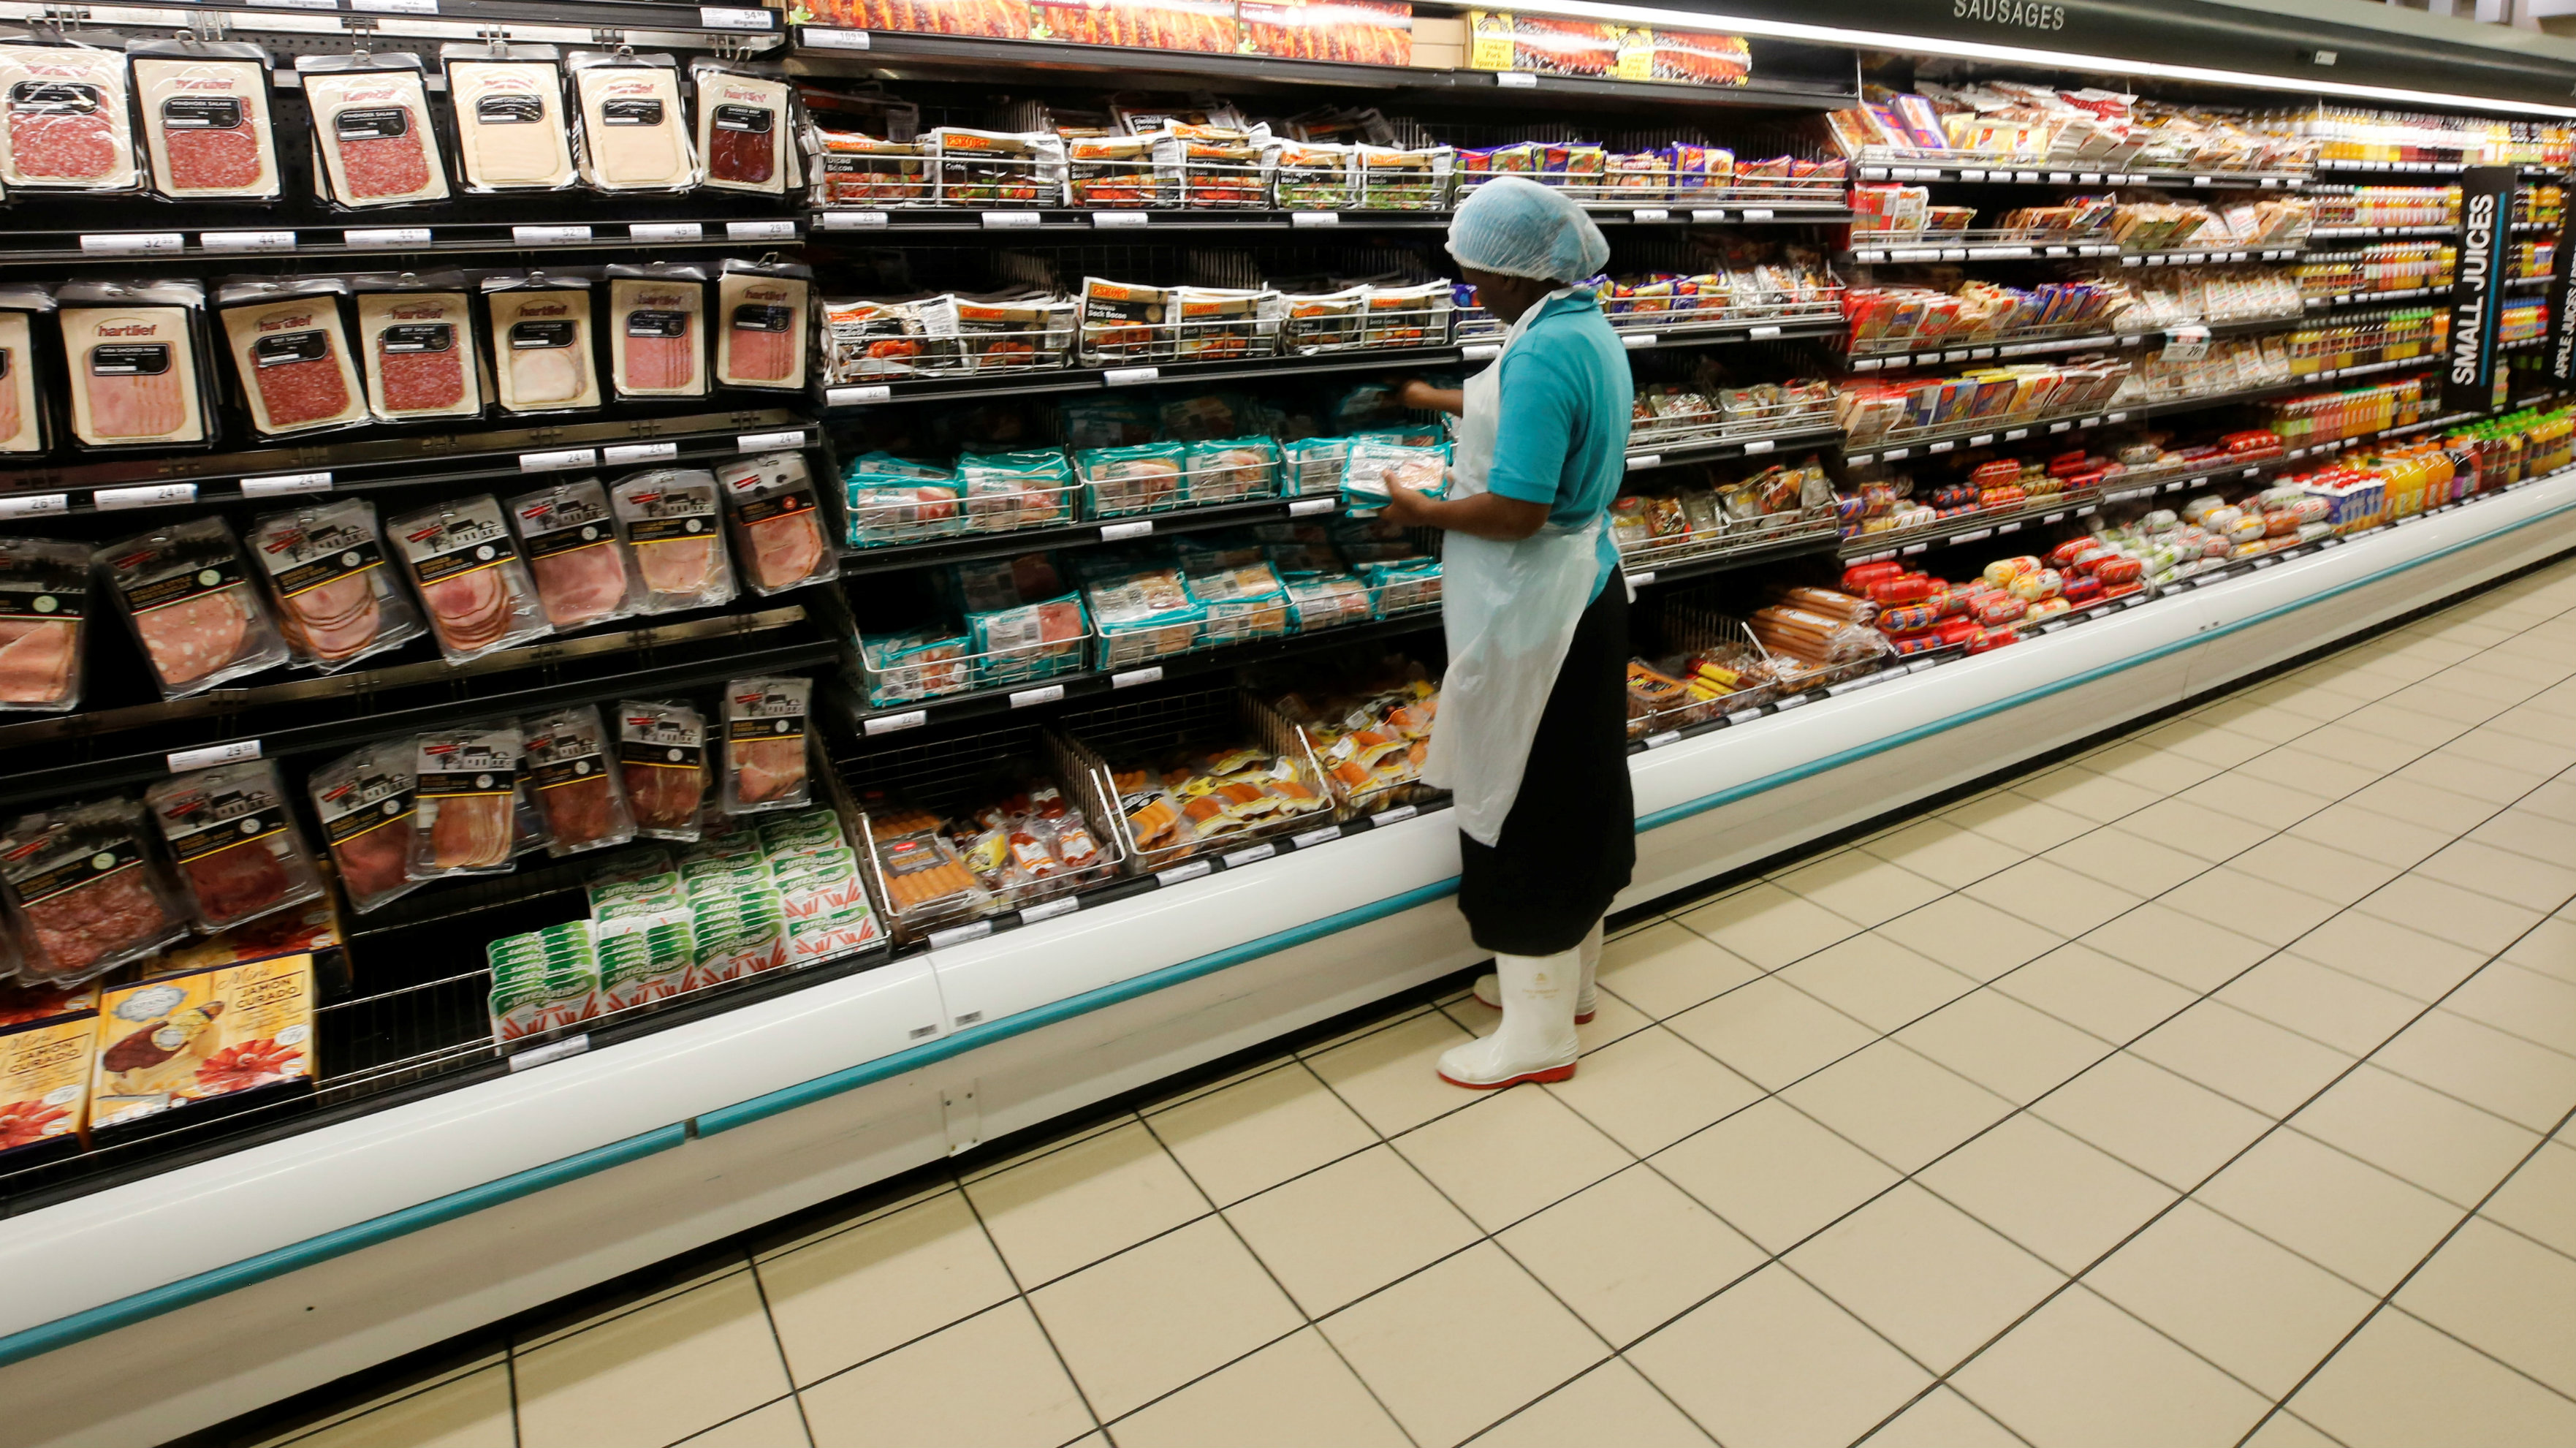 A worker packs cold meats at an outlet of retailer Shoprite Checkers in Cape Town, South Africa, June 15, 2017. Picture taken June 15, 2017.